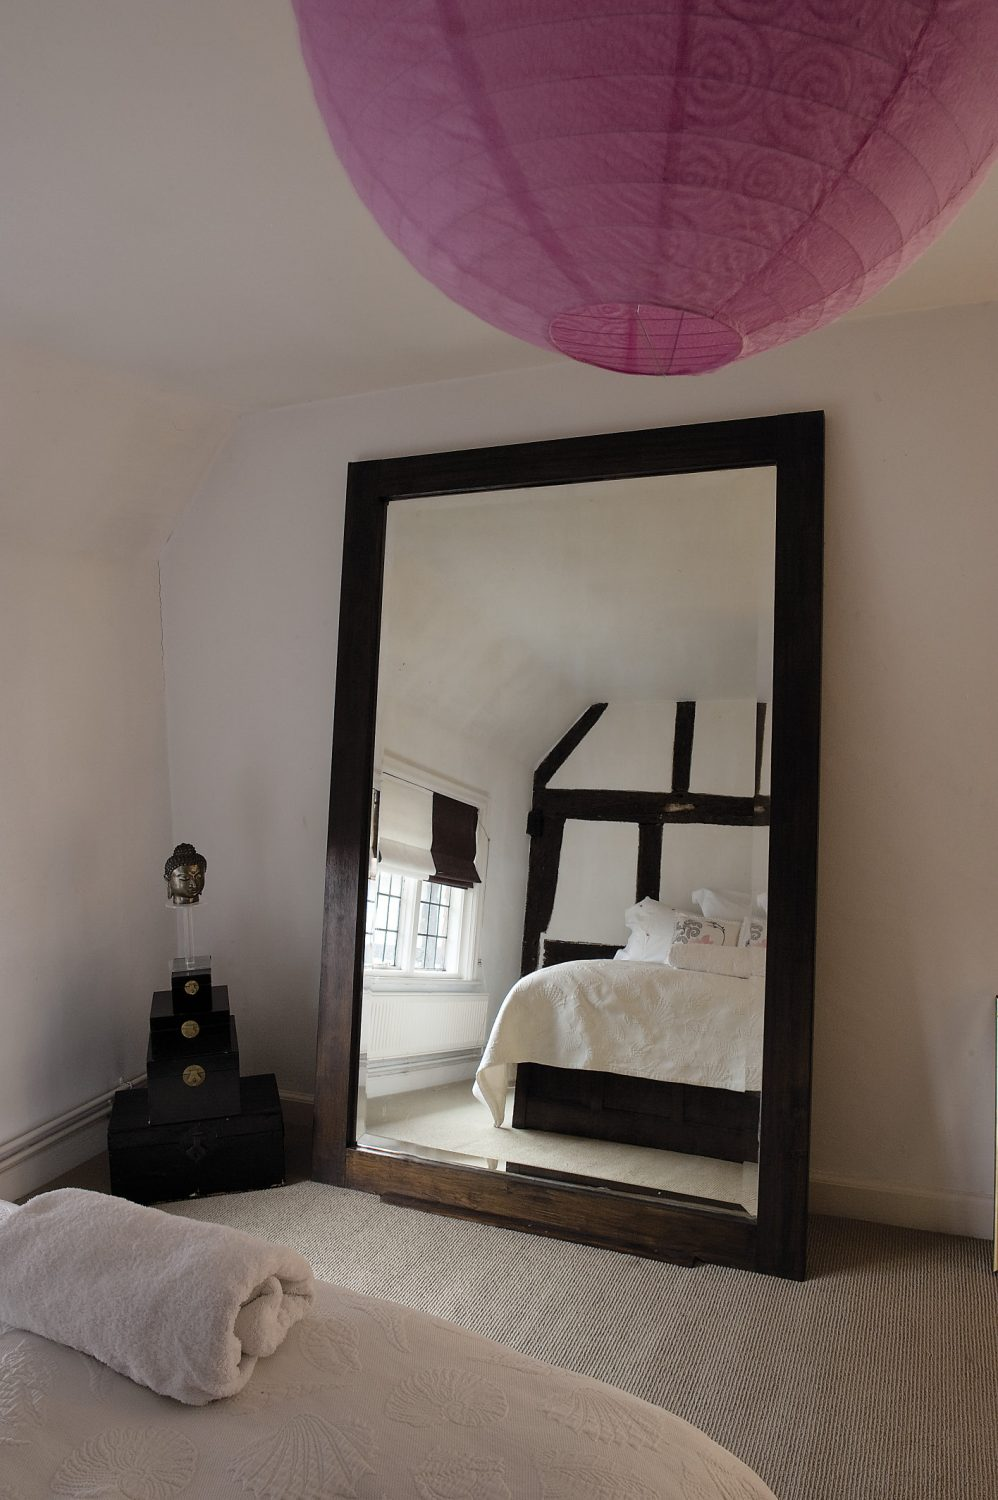 A guest room has been given the same chalky white walls as elsewhere but there is a chocolate brown and white striped blind, echoing the dark wall timbers, while the white bedlinen is dressed with pink embroidered cushions and a Japanese lantern made of textured pink paper hangs above